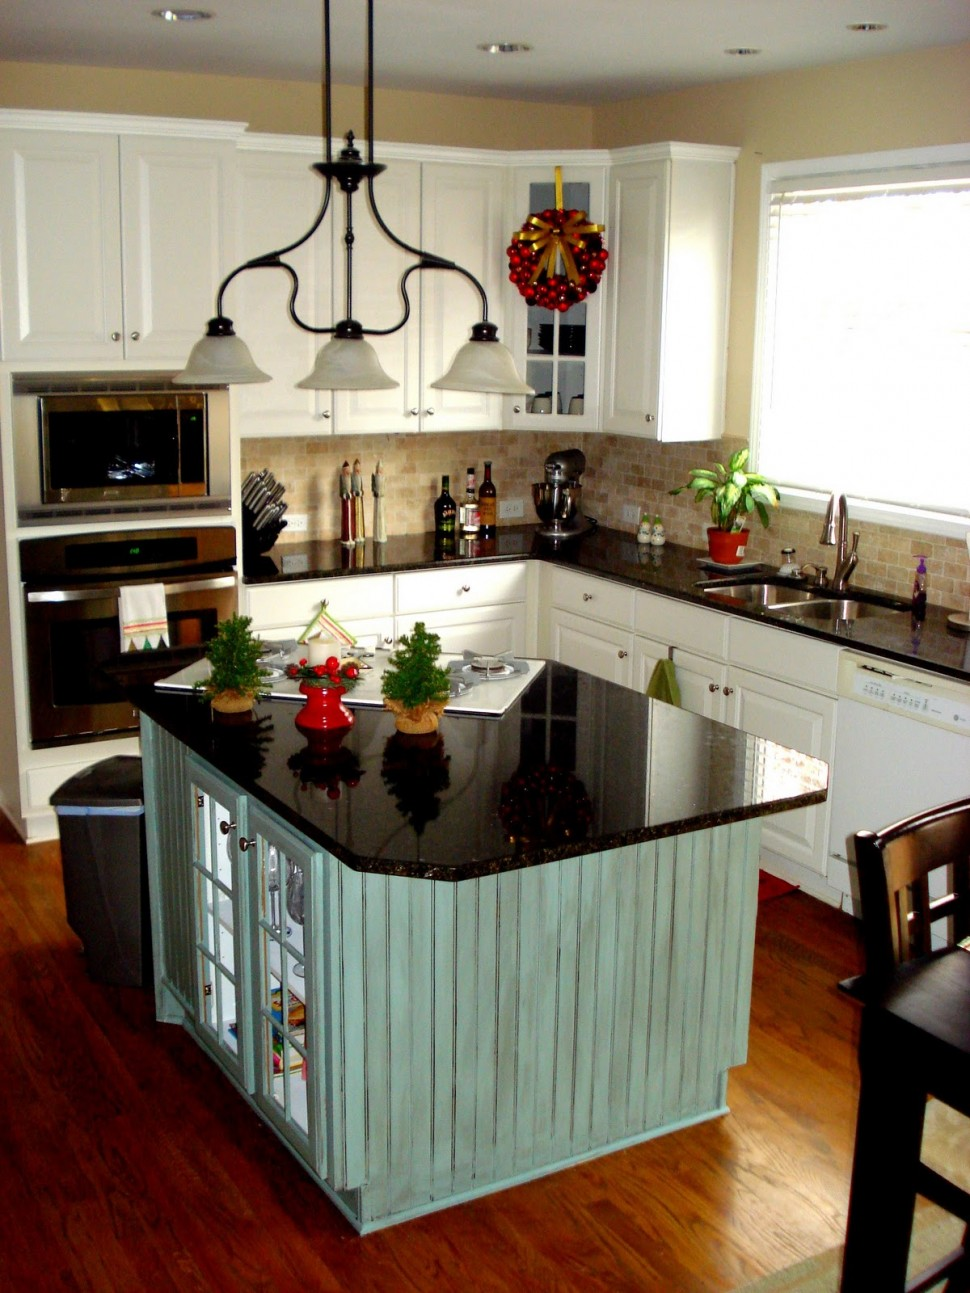 amazing large kitchen island designs | 30 Amazing Kitchen Island Ideas For Your Home